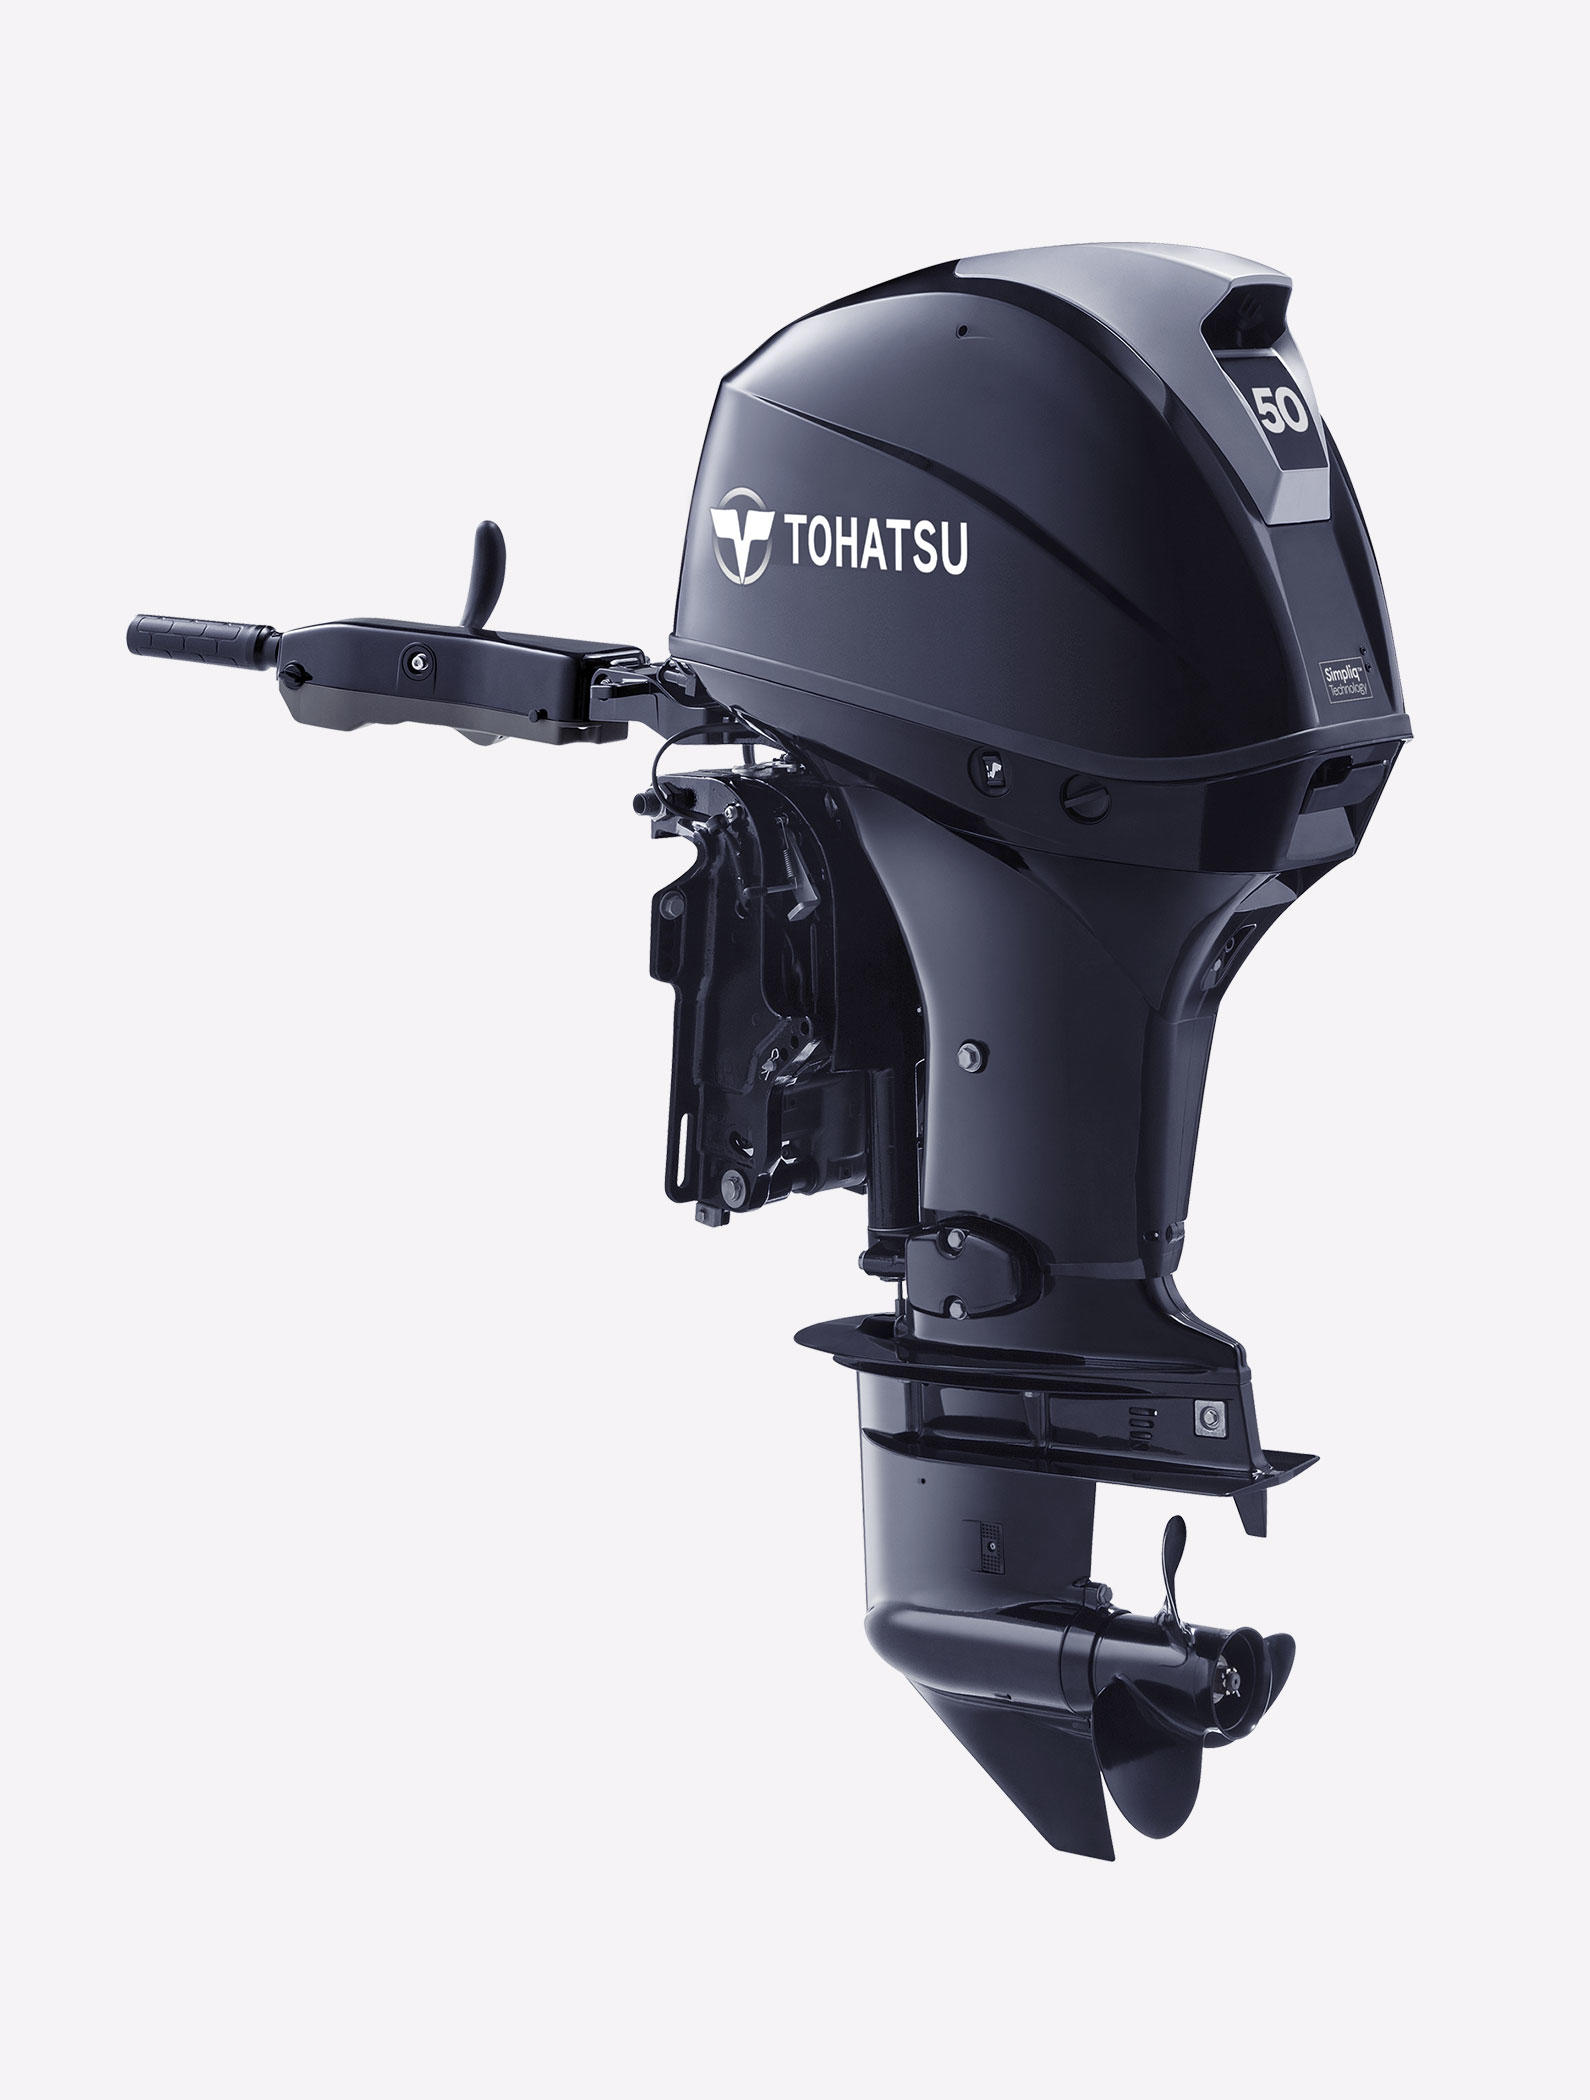 Mfs50 mid range outboards tohatsu outboard motors for Tohatsu outboard motors online